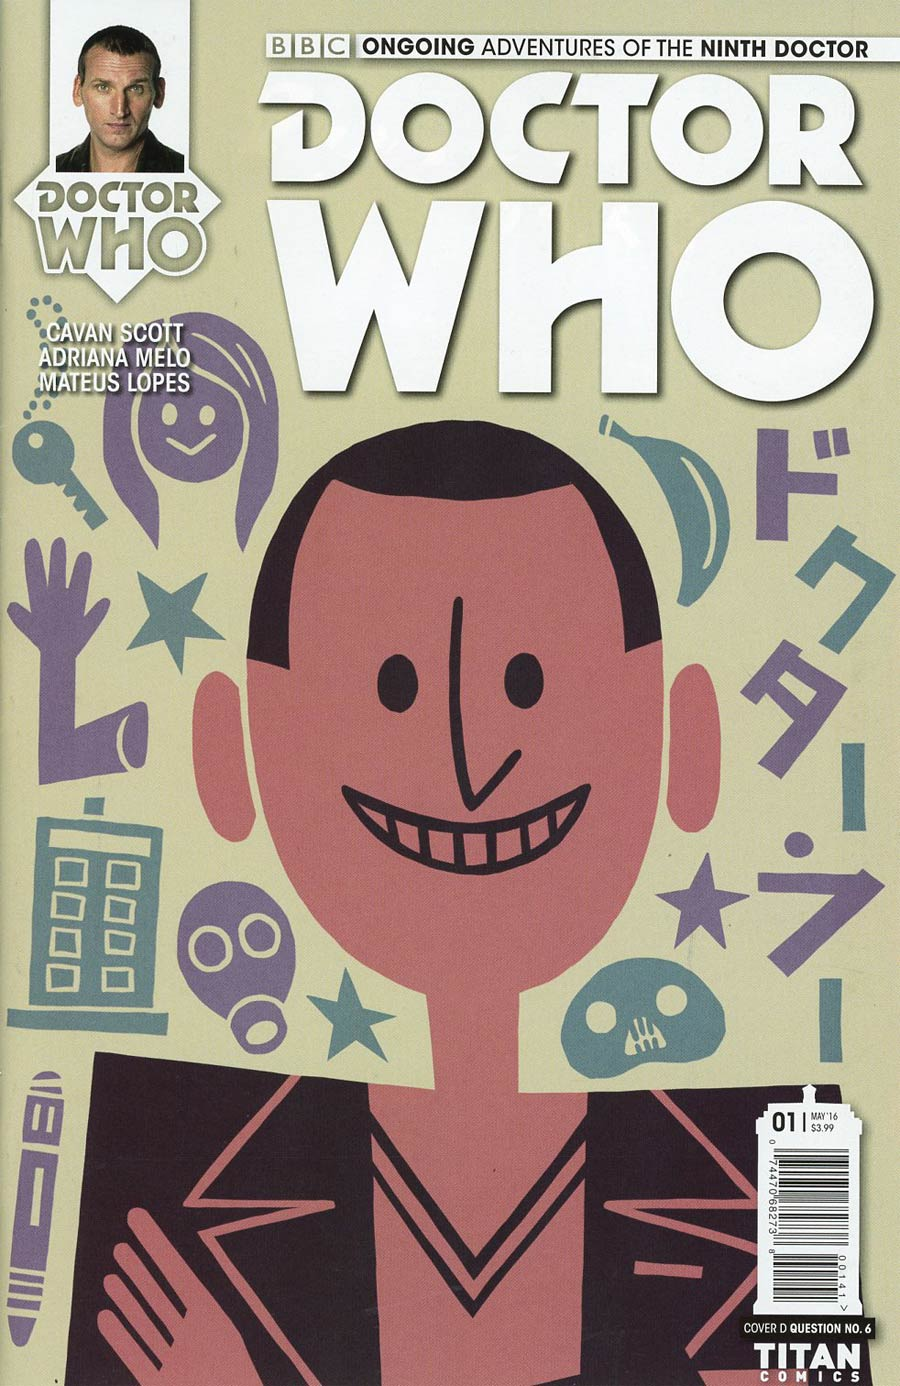 Doctor Who 9th Doctor Vol 2 #1 Cover D Variant Question 6 Cover